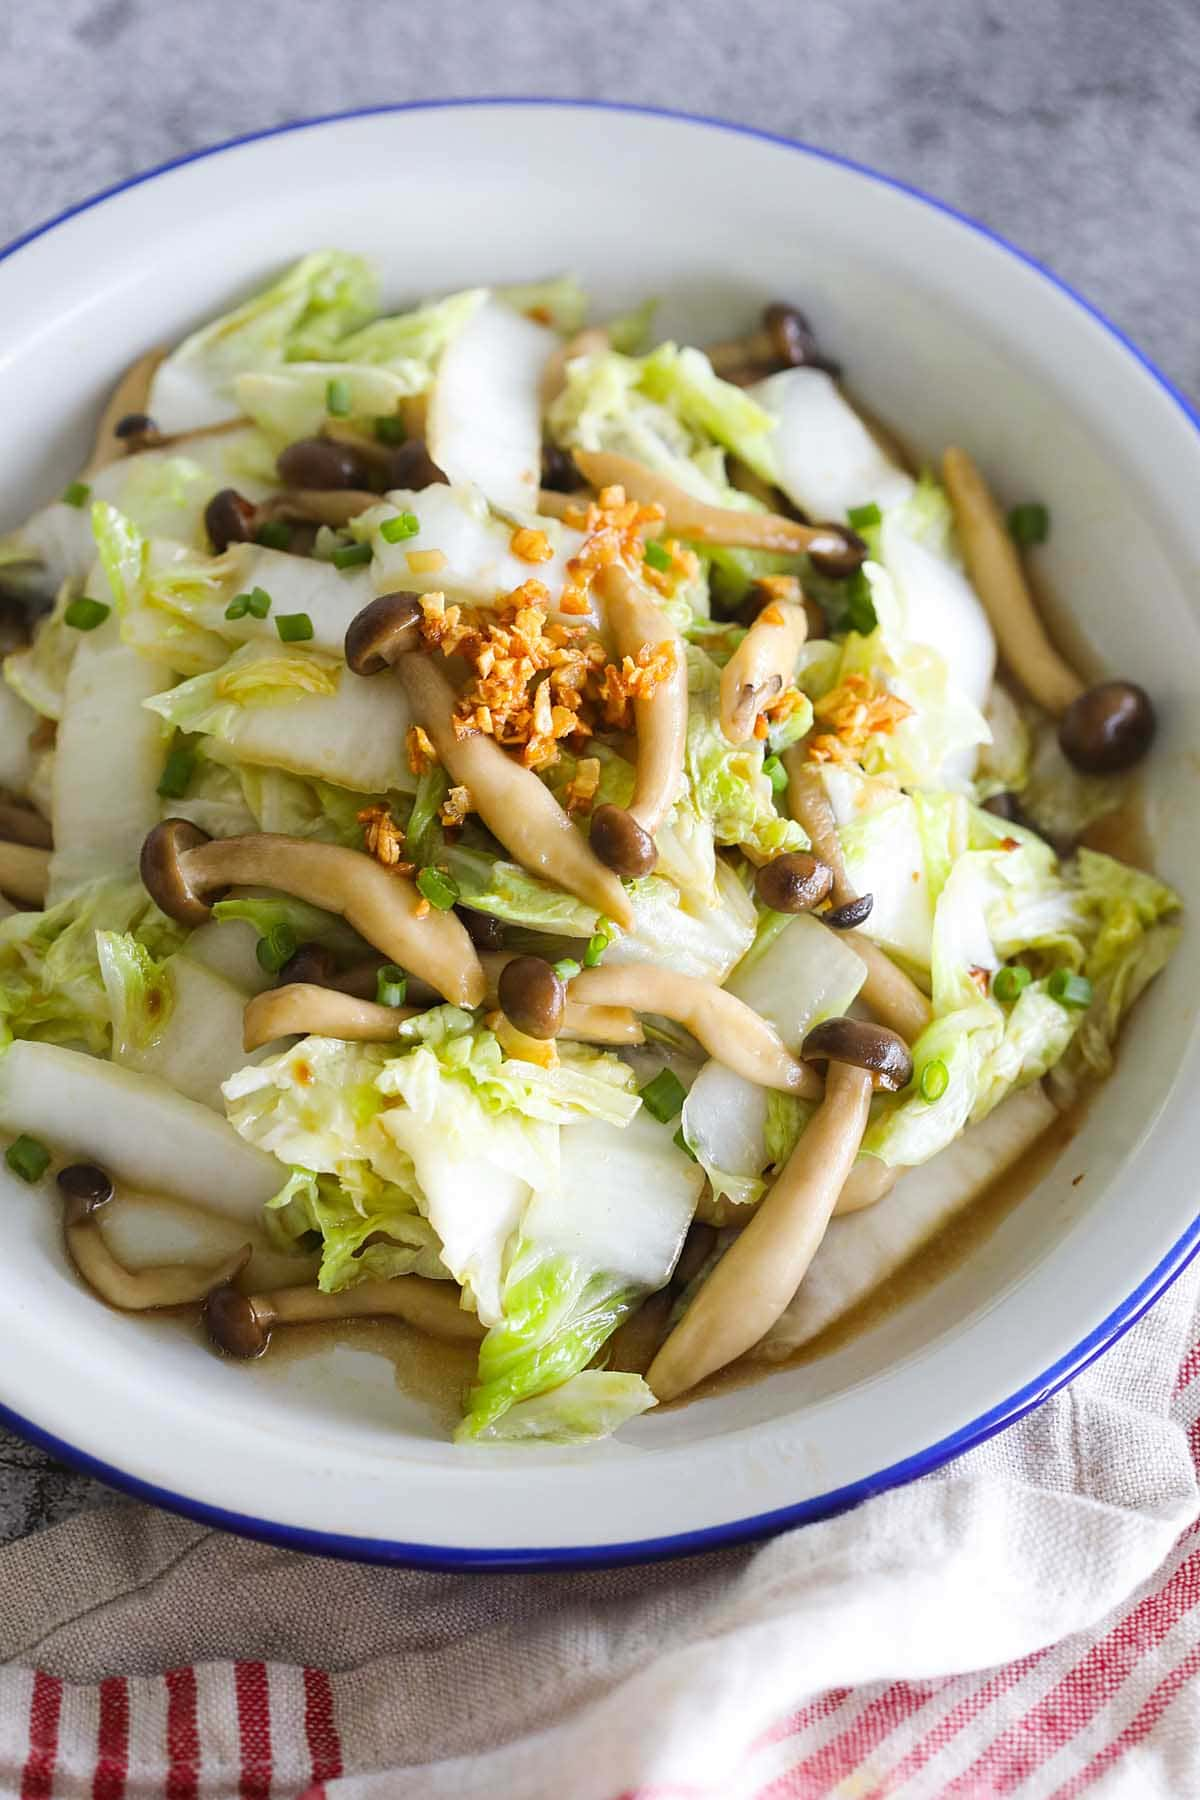 One of the easiest Napa cabbage recipes is Napa cabbage stir fry with mushroom.